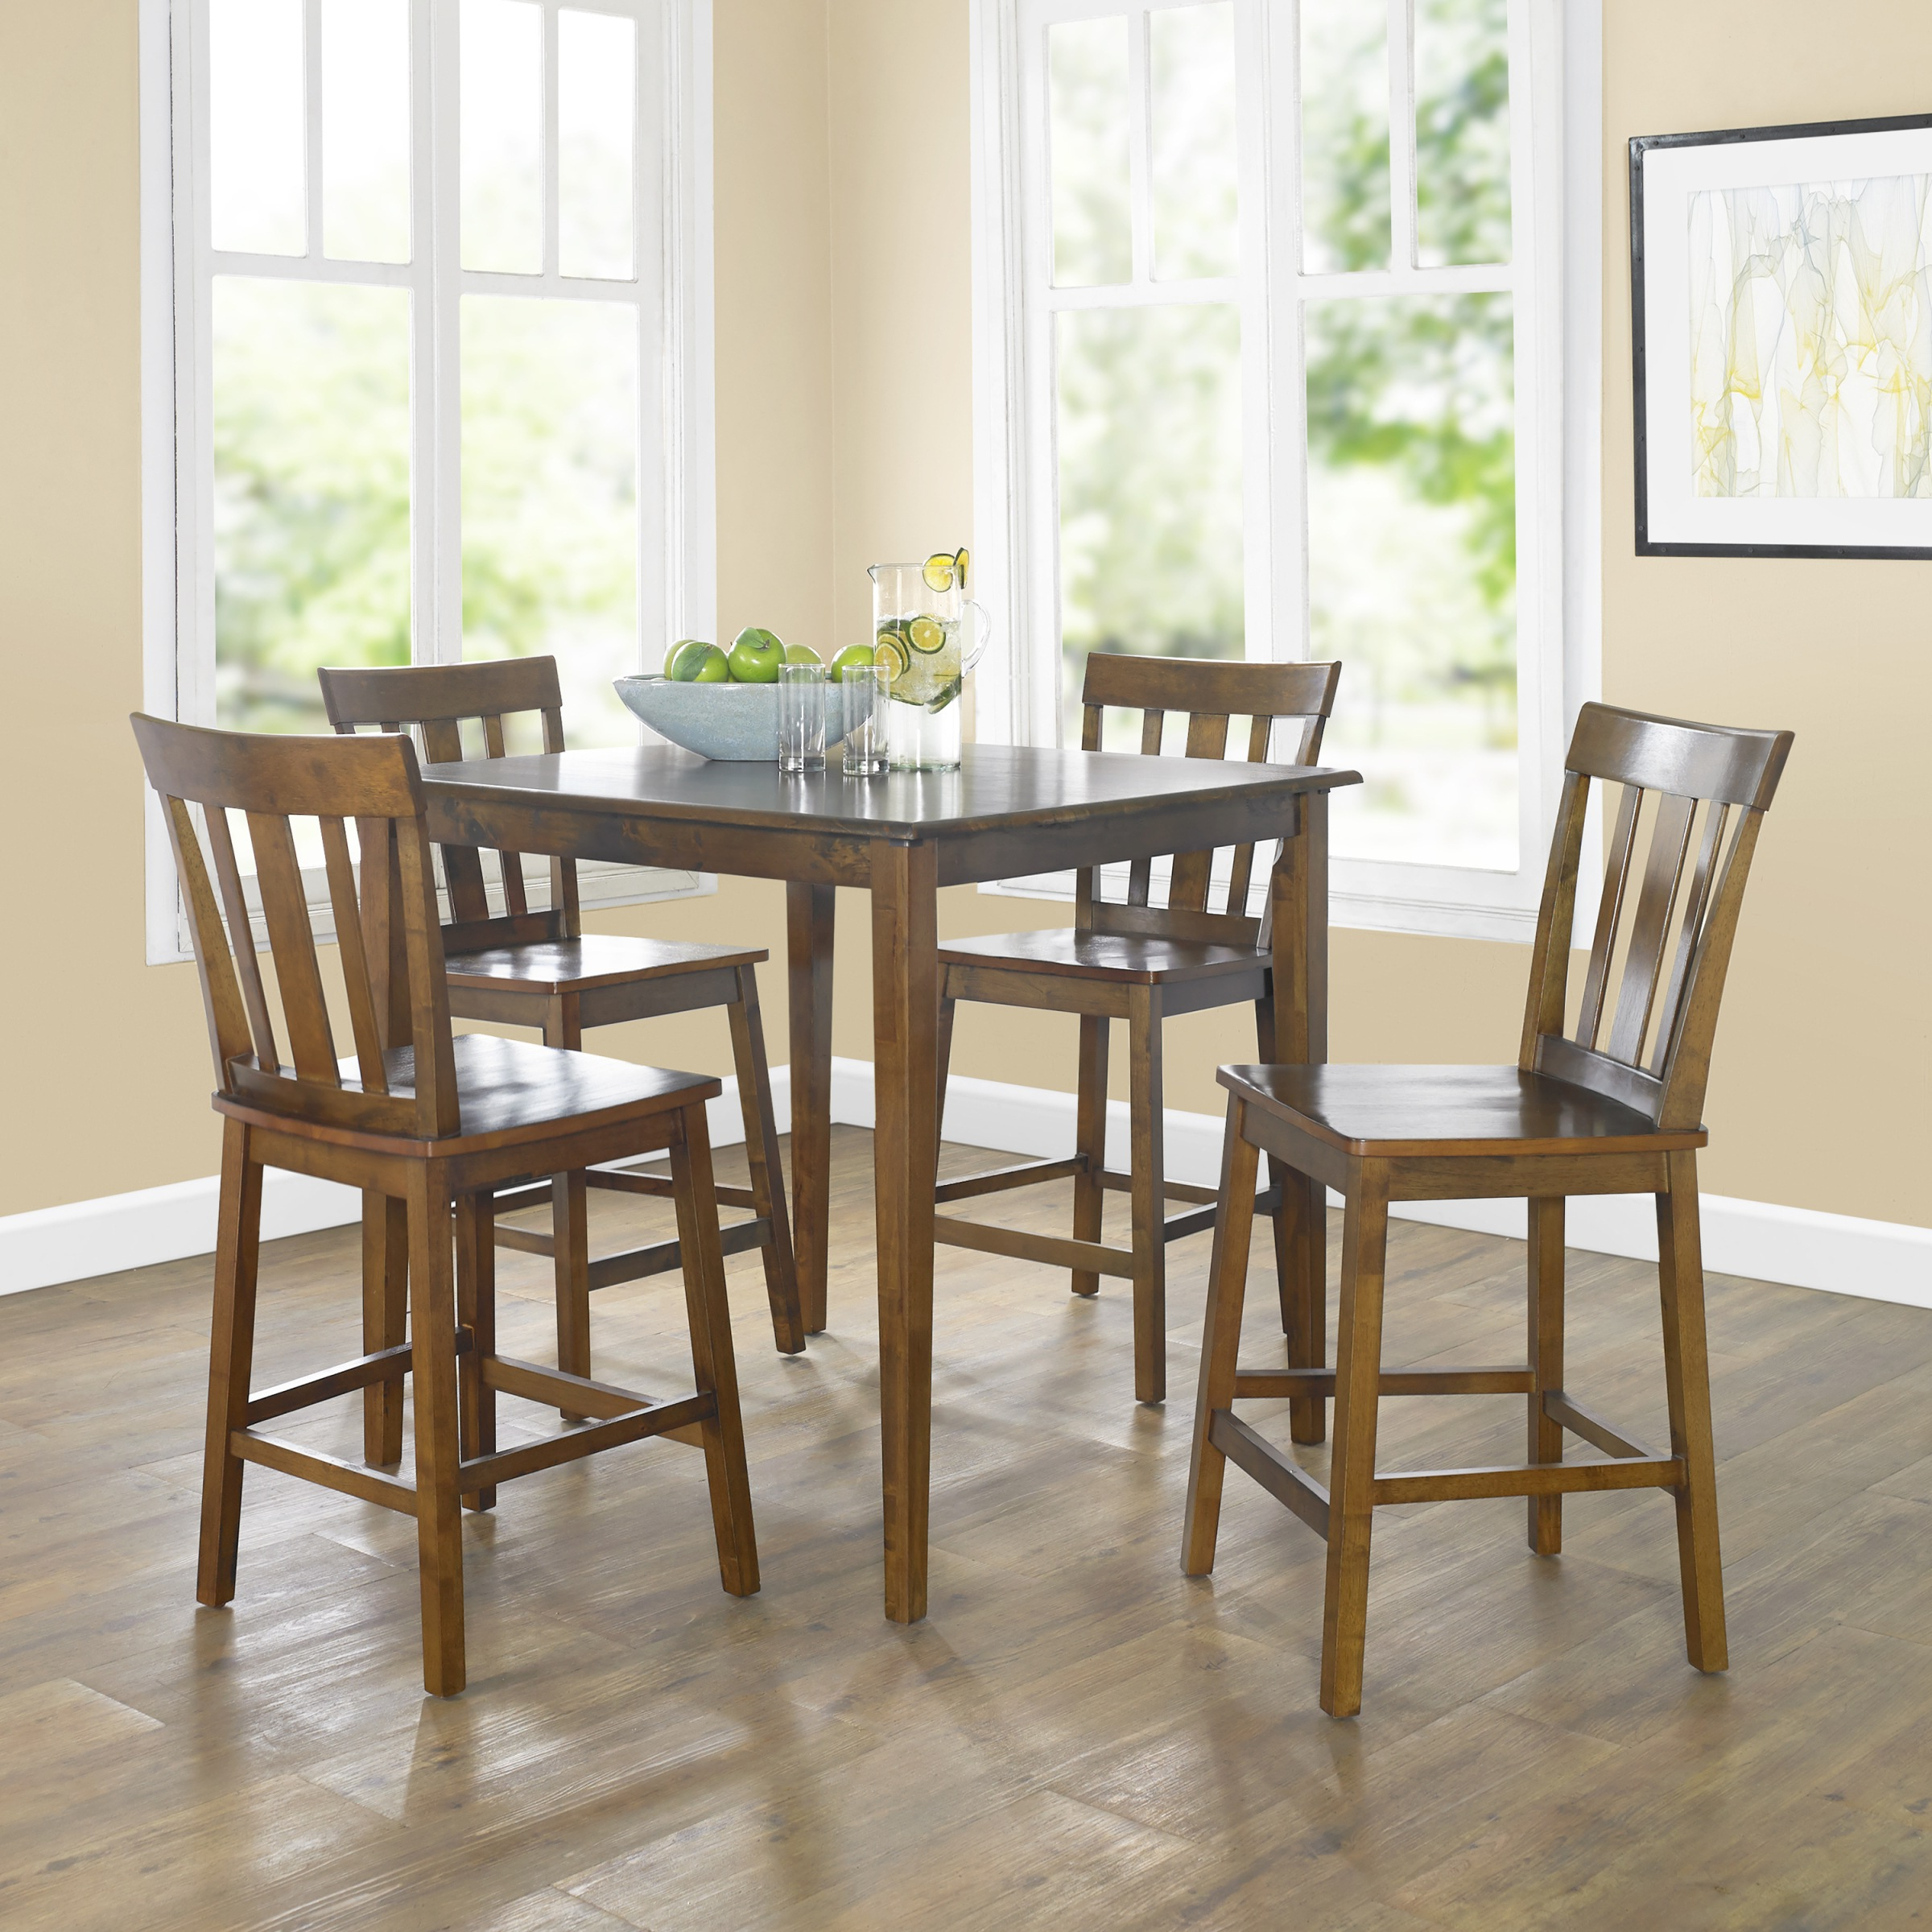 Most Up To Date Glamorous 3 Piece Counter Height Kitchen Sets Chairs Setup Chair For Winsome 3 Piece Counter Height Dining Sets (View 18 of 20)